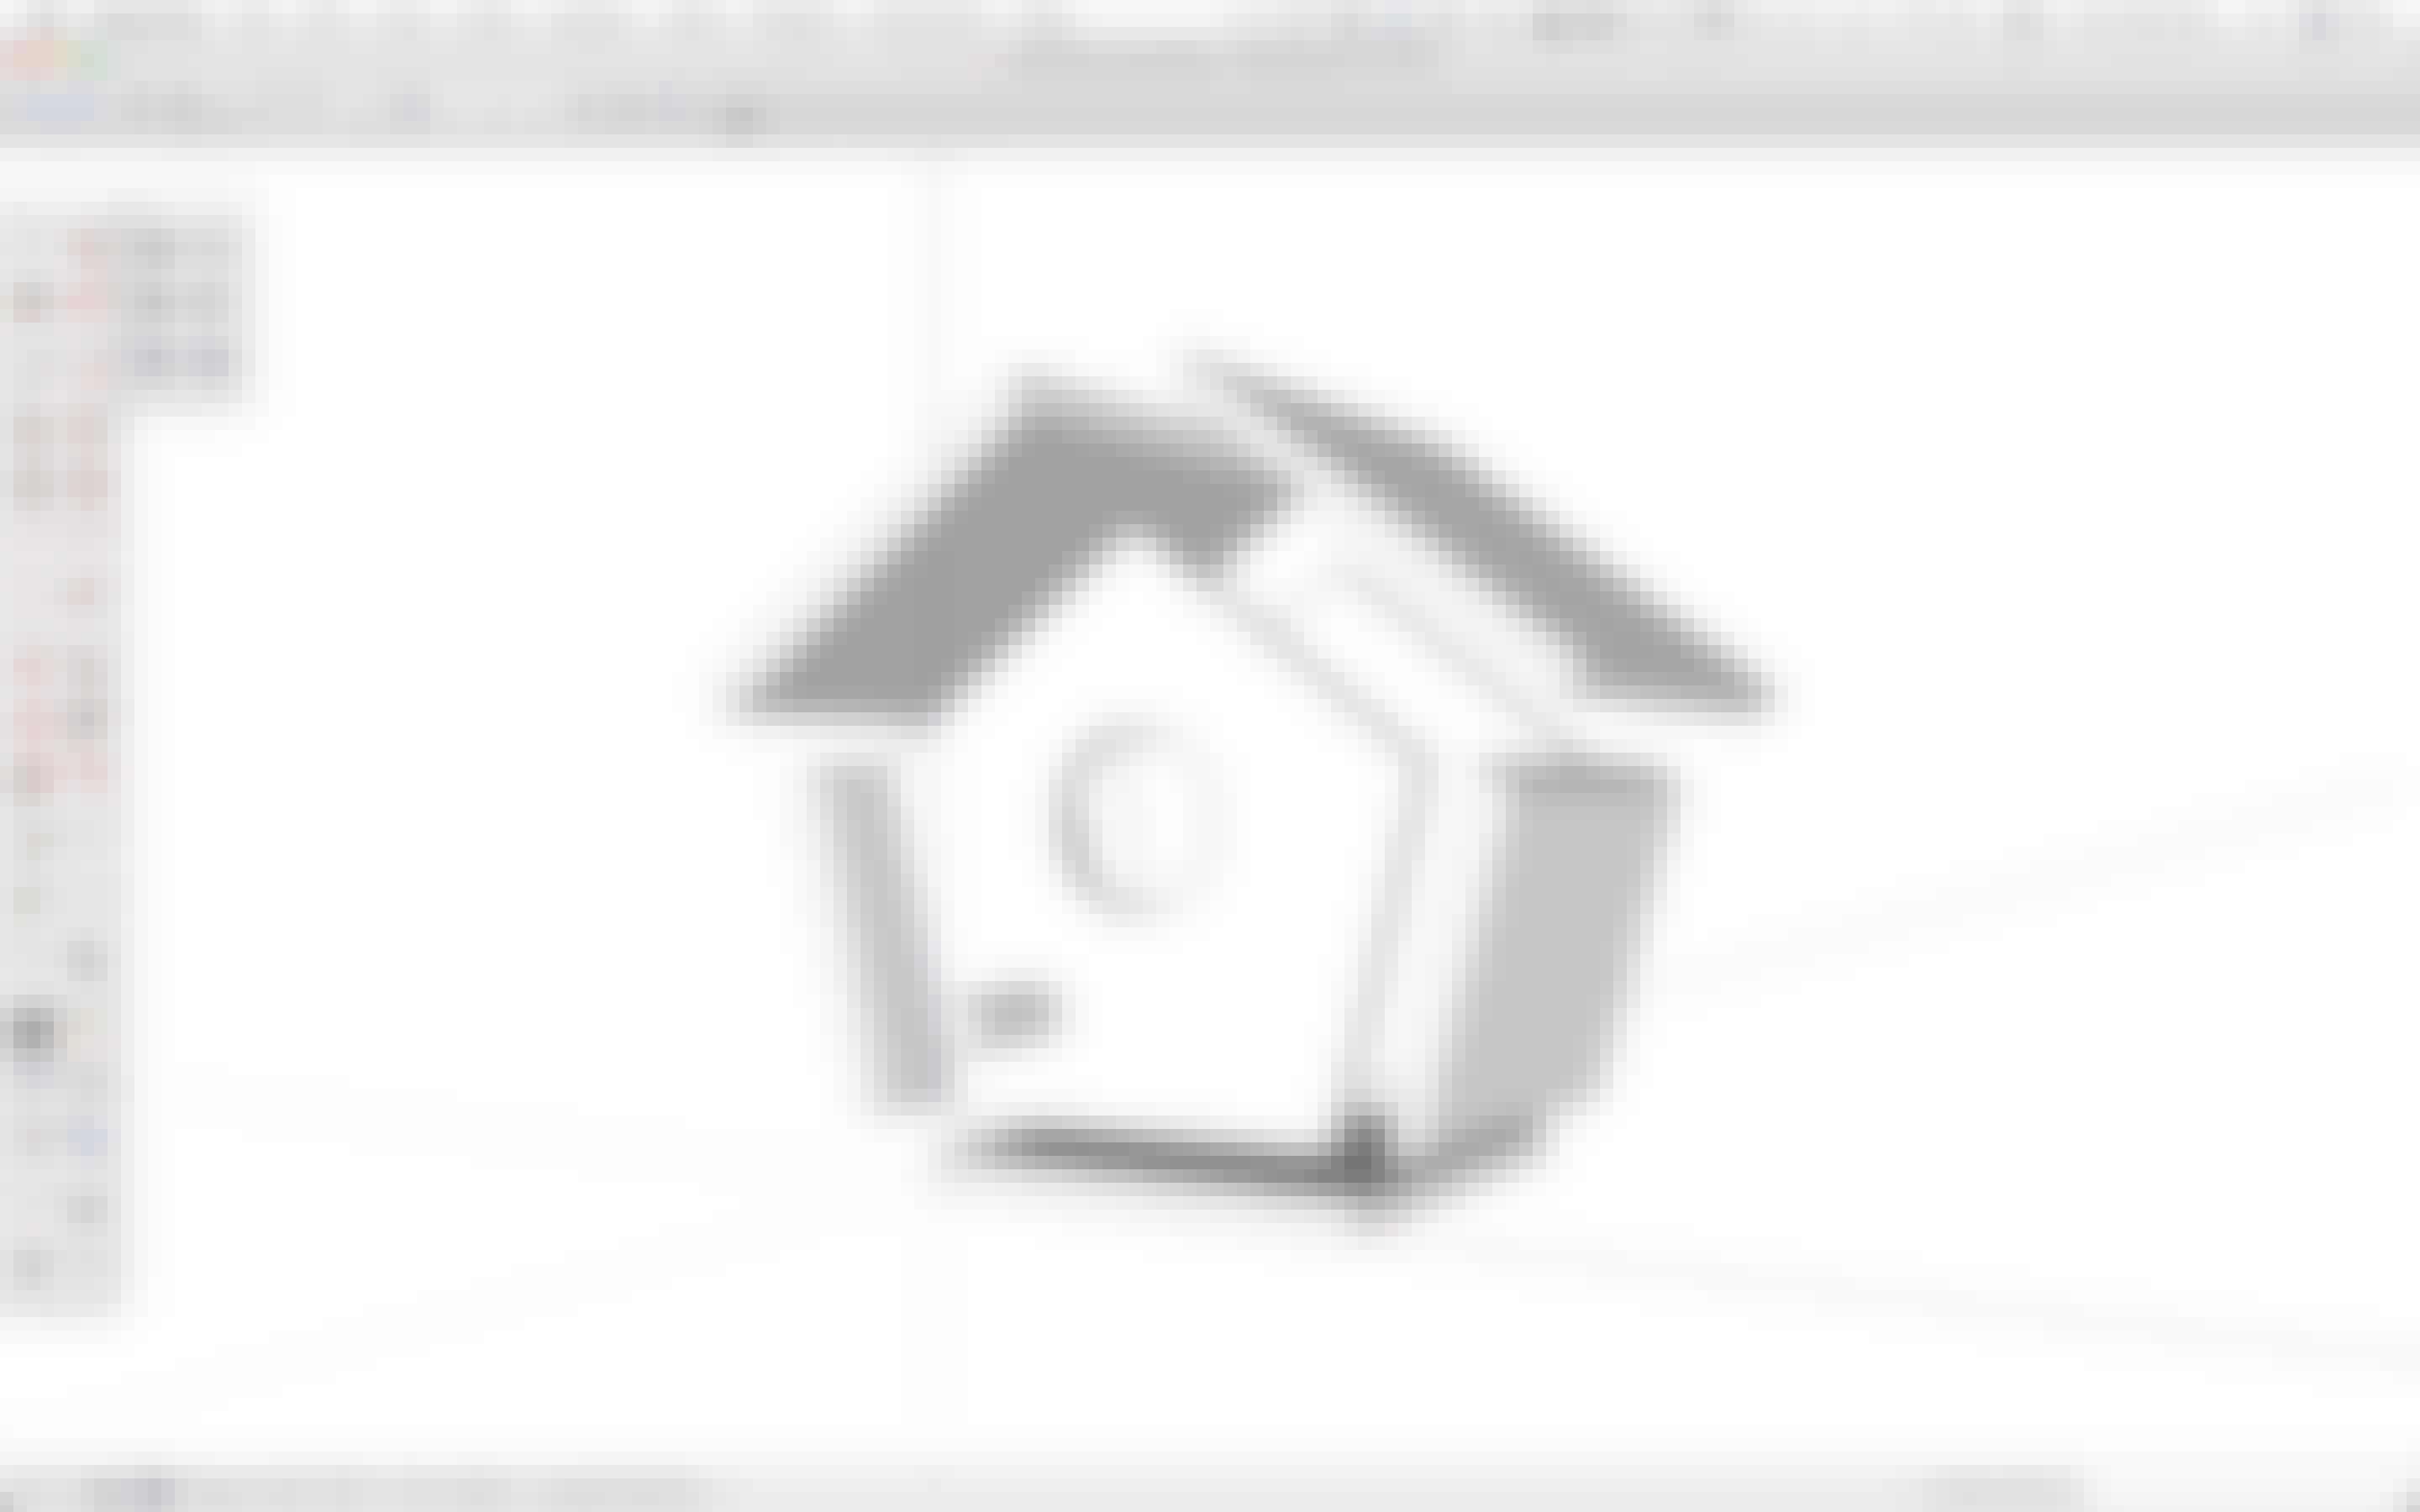 before using outer shell tool